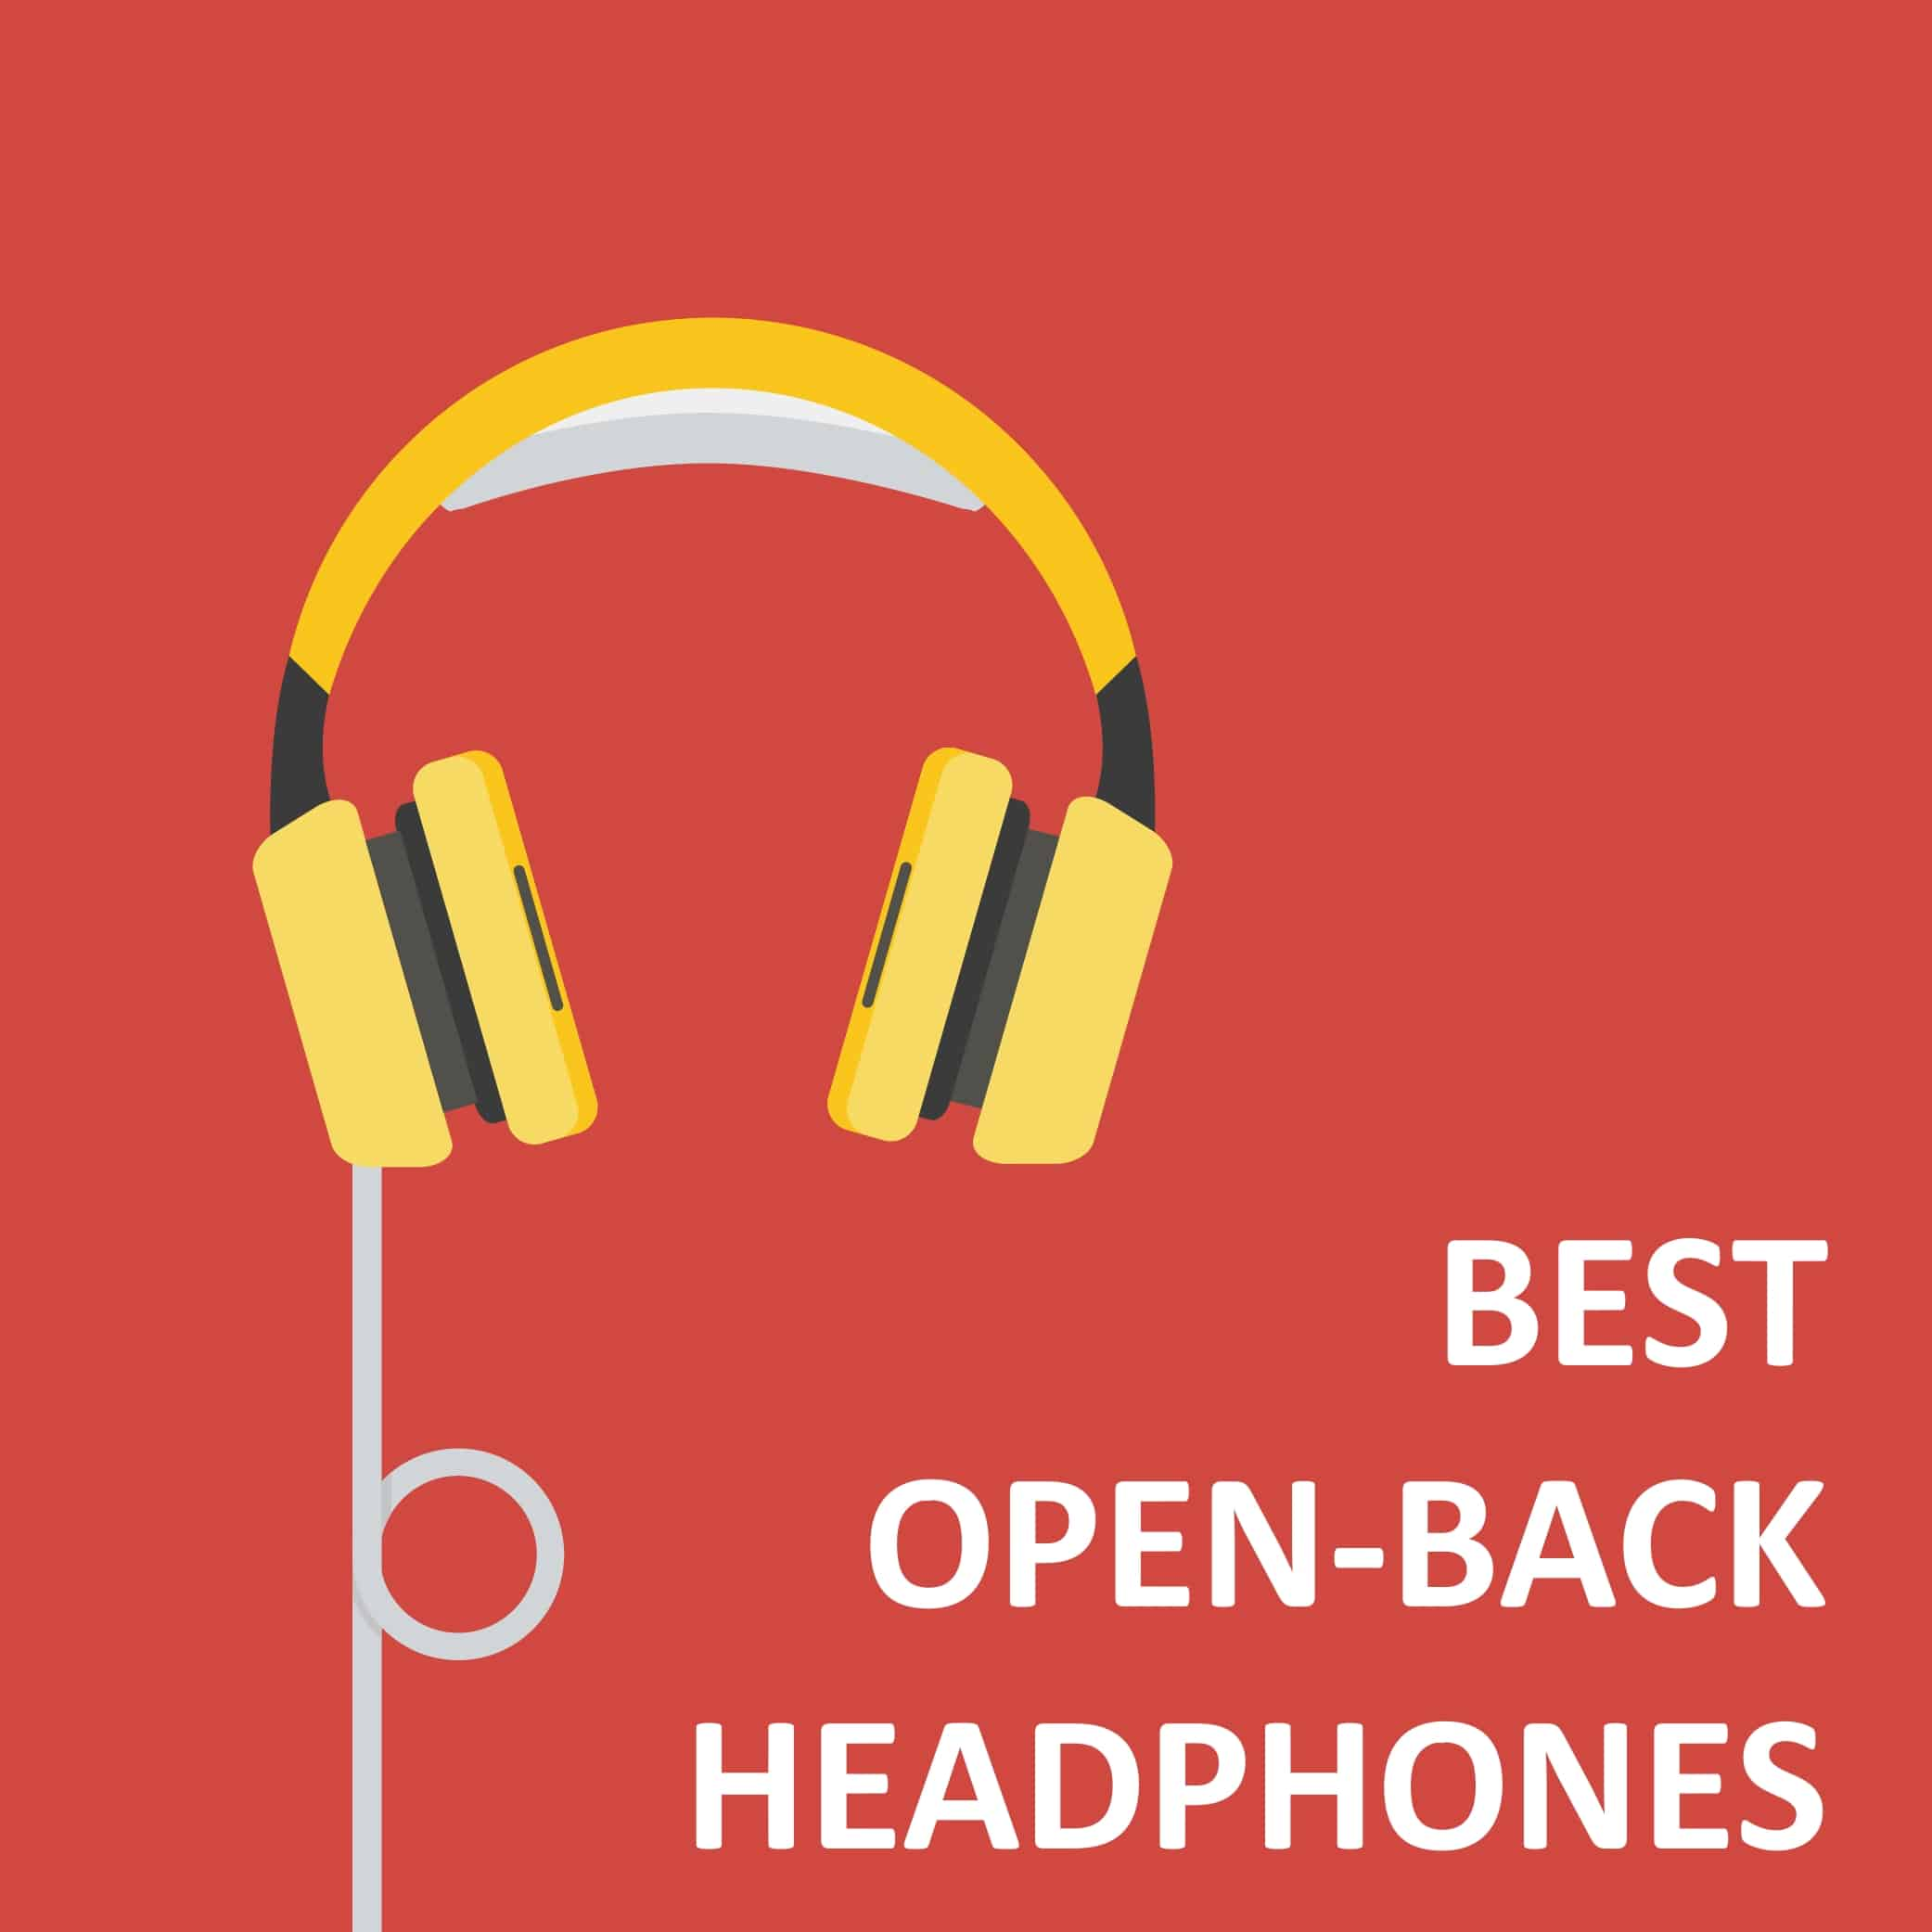 We have reviewed the top open-back headphones 2018 has available. We have categorized best headphones for gaming, movies, mixing, studio and critical listening.